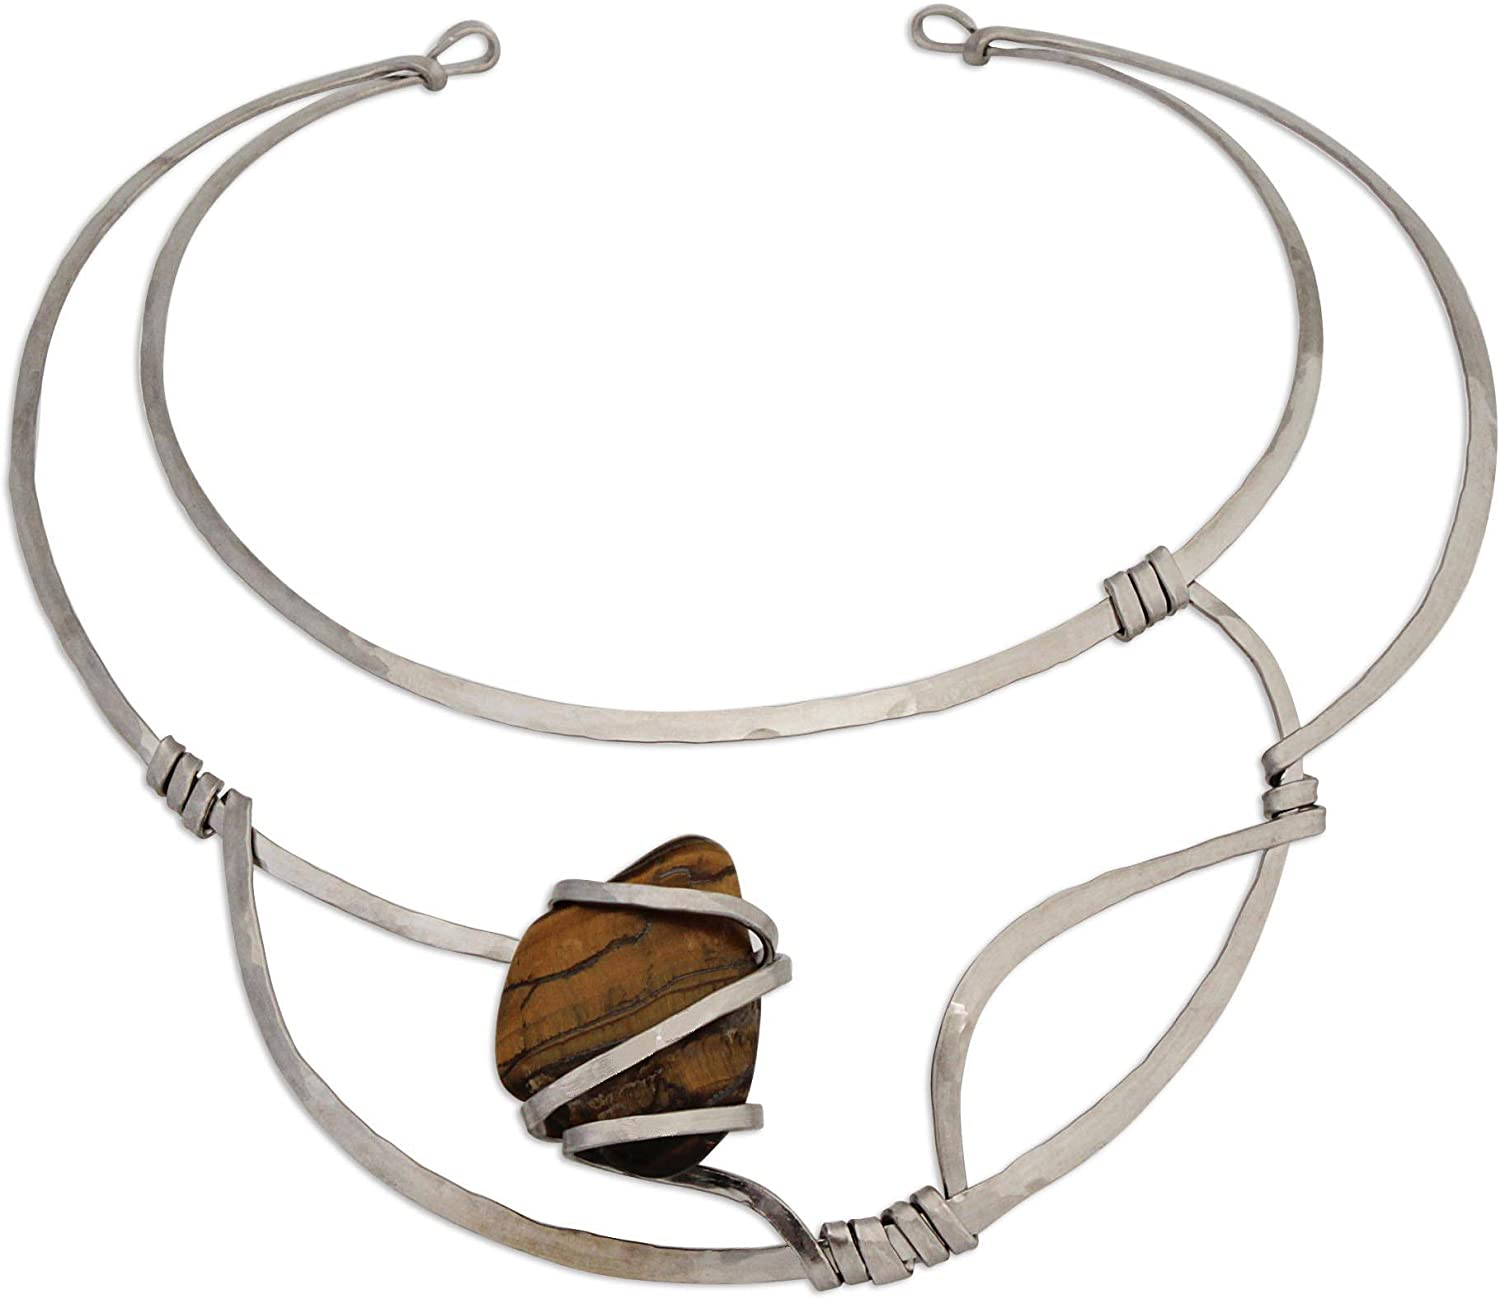 NOVICA Tiger's Eye Stainless Steel Collar Necklace, 13.75